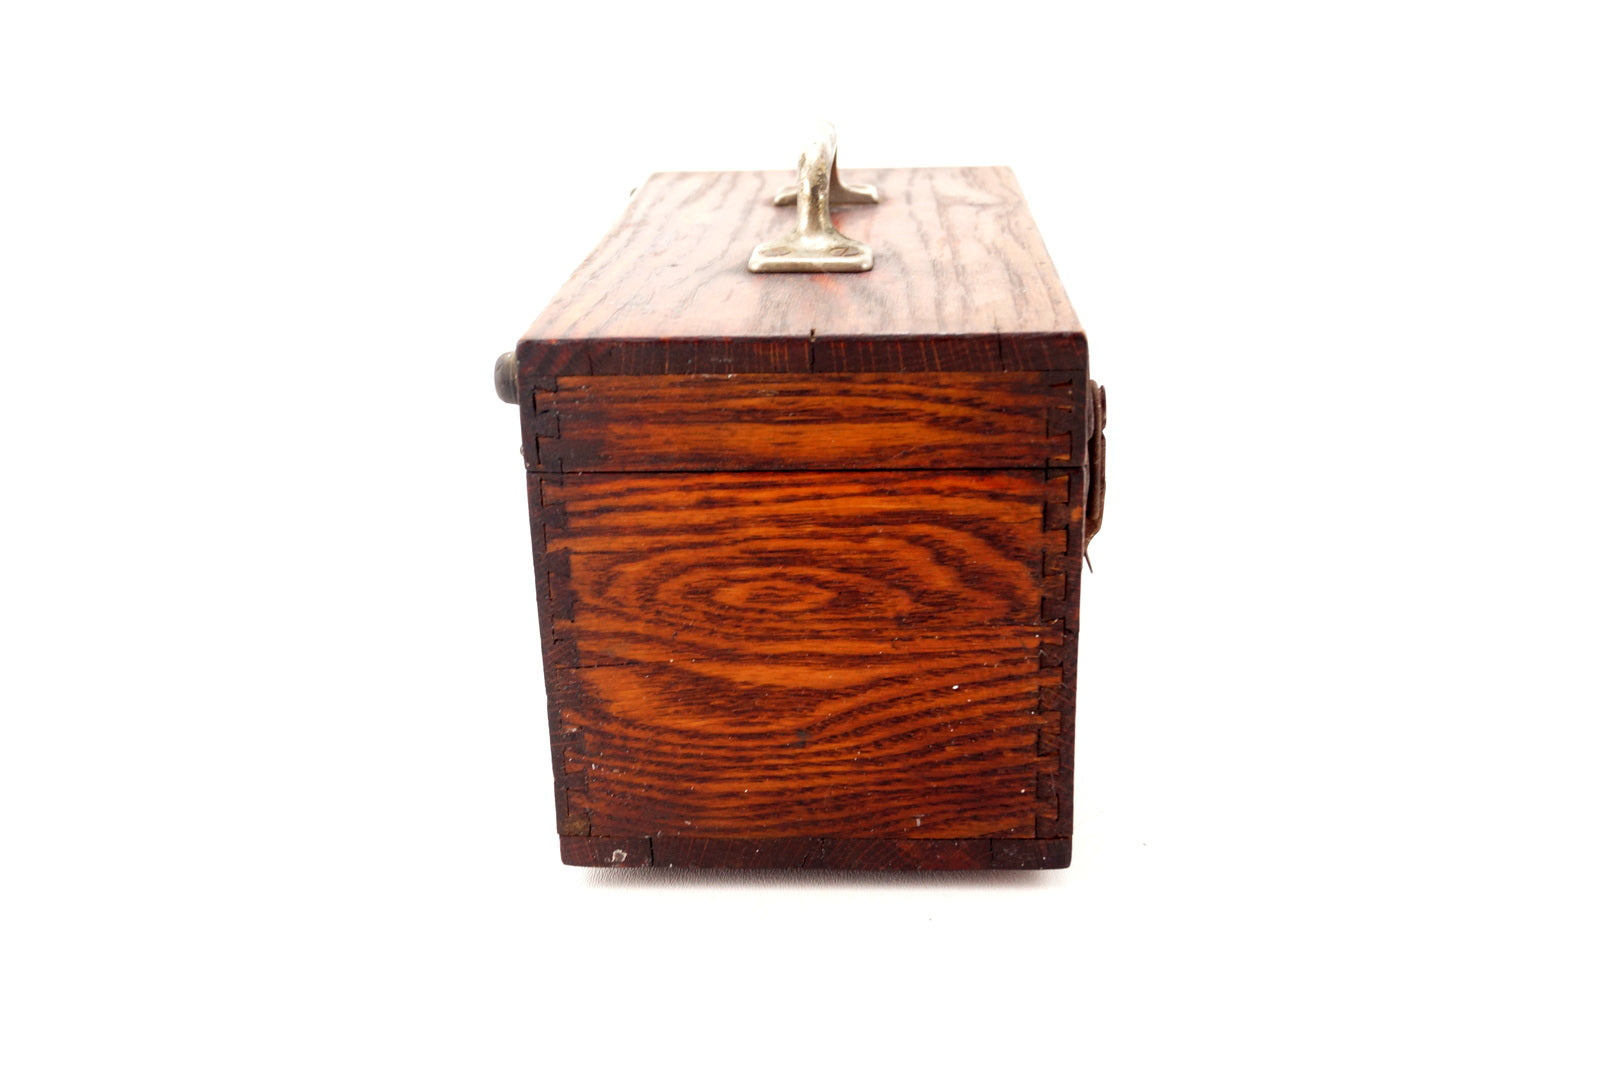 Vintage wood box with lid handle and metal label plate navy